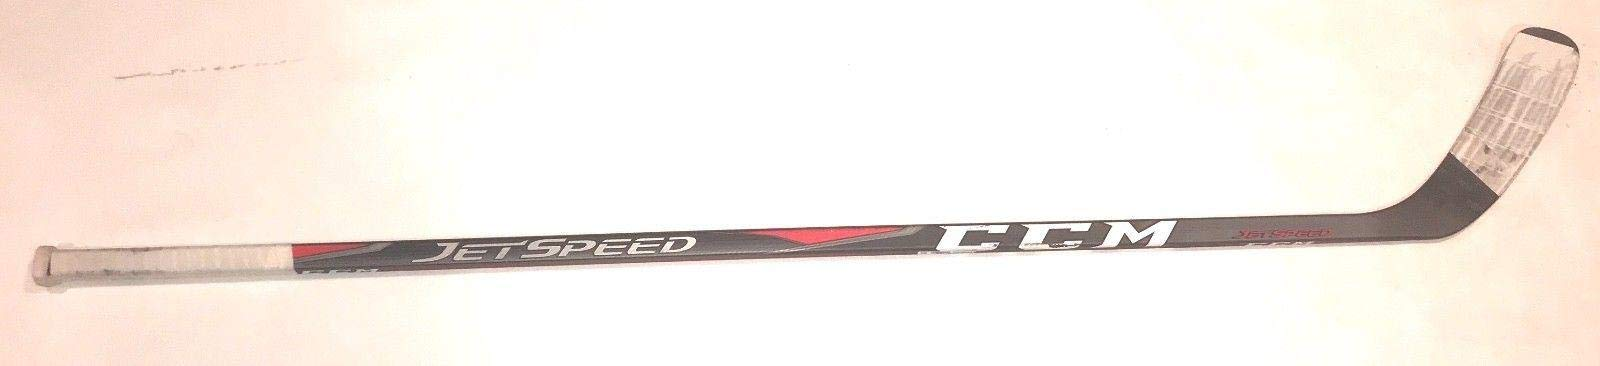 Trevor Daley Game Used Stick DETROIT RED WINGS 2018 2019 Stick CCM Jet Speed Game Used NHL Sticks